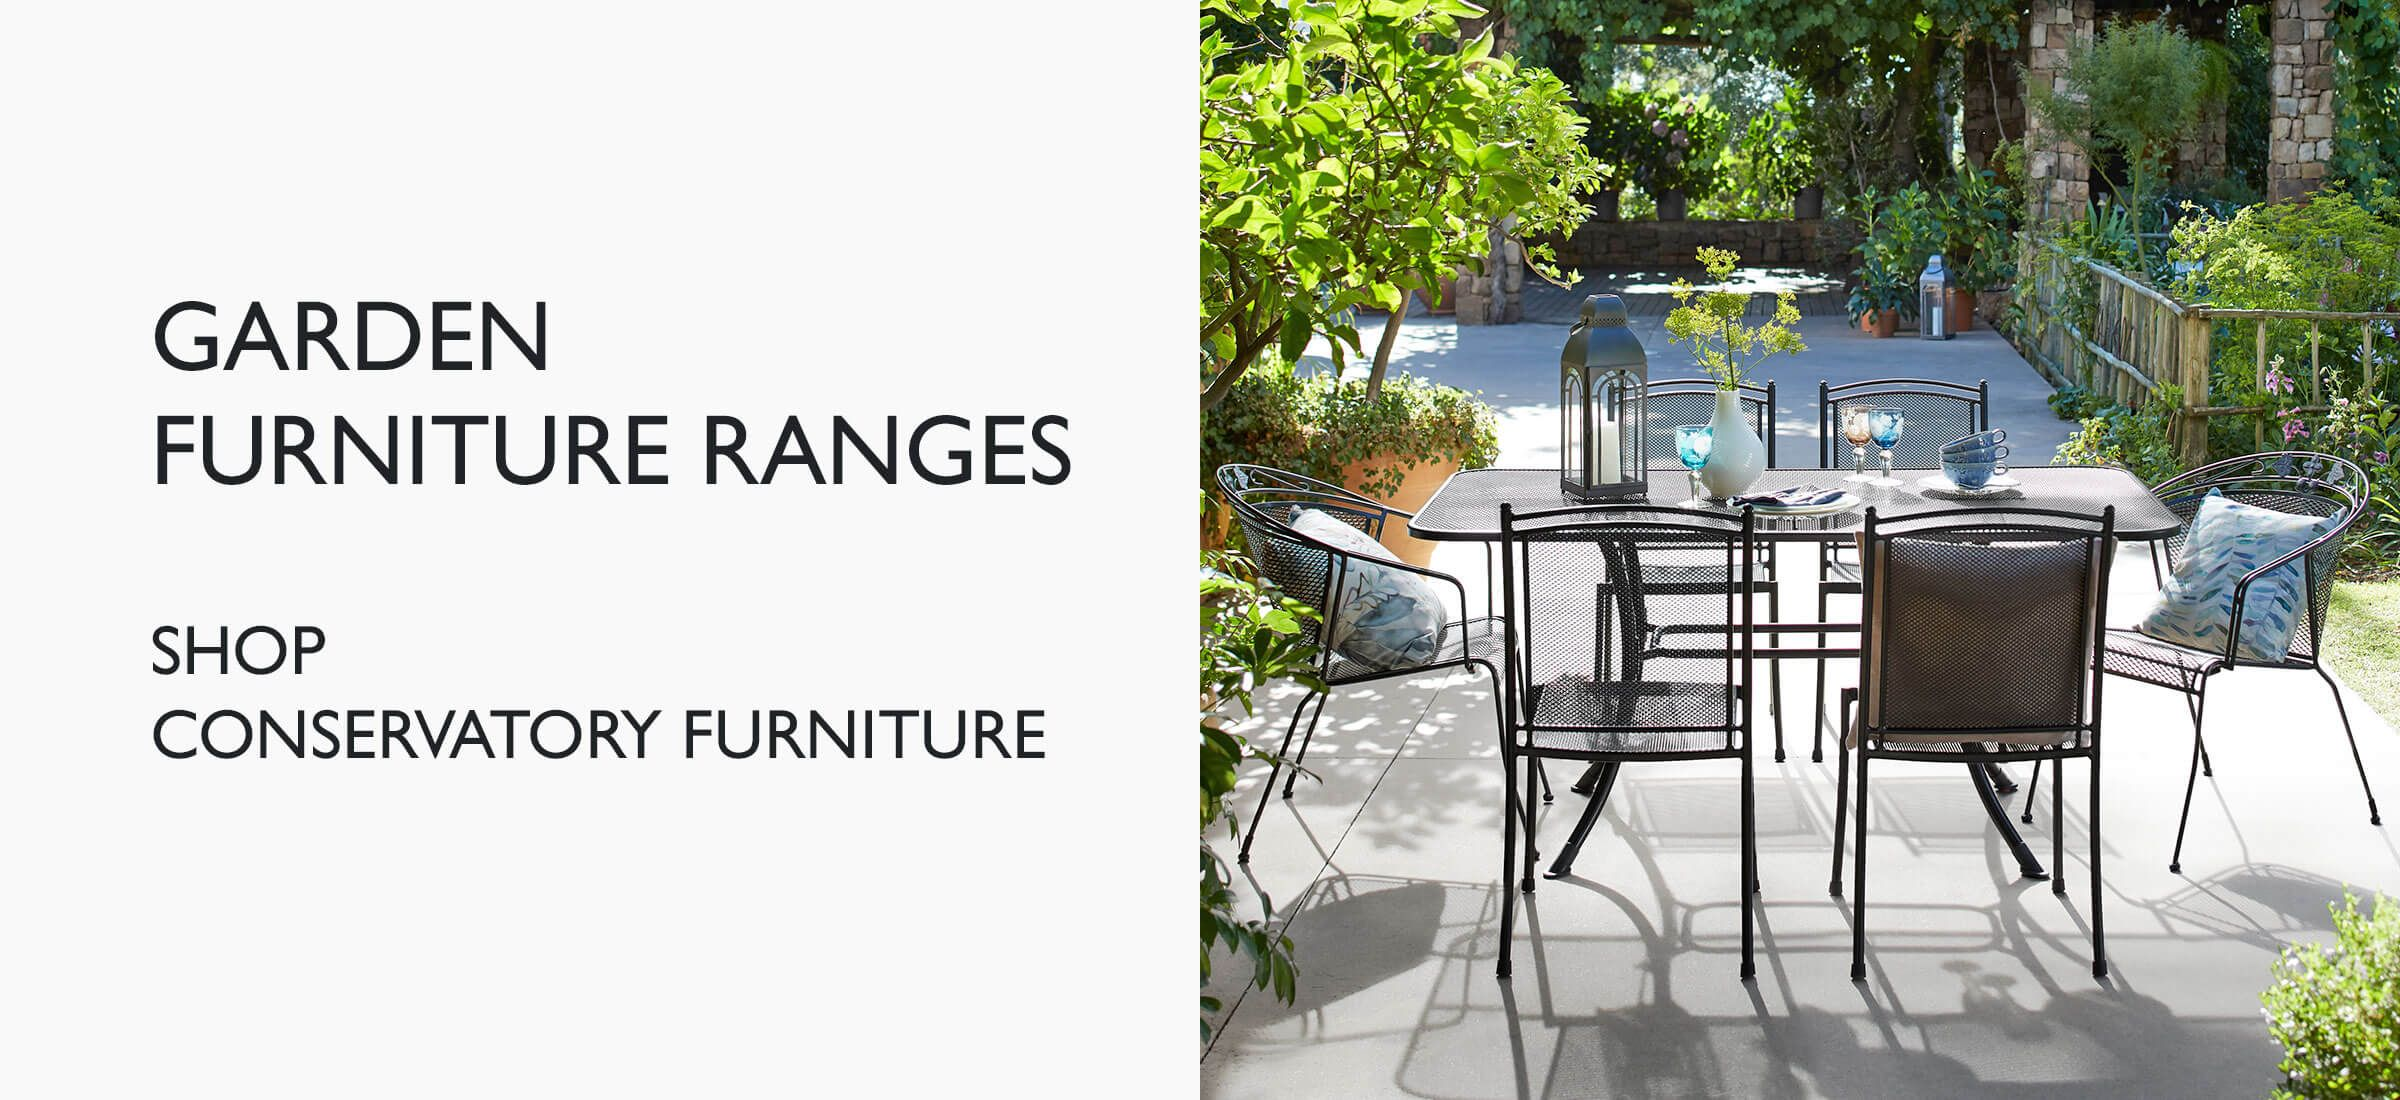 Shop all Conservatory Furniture